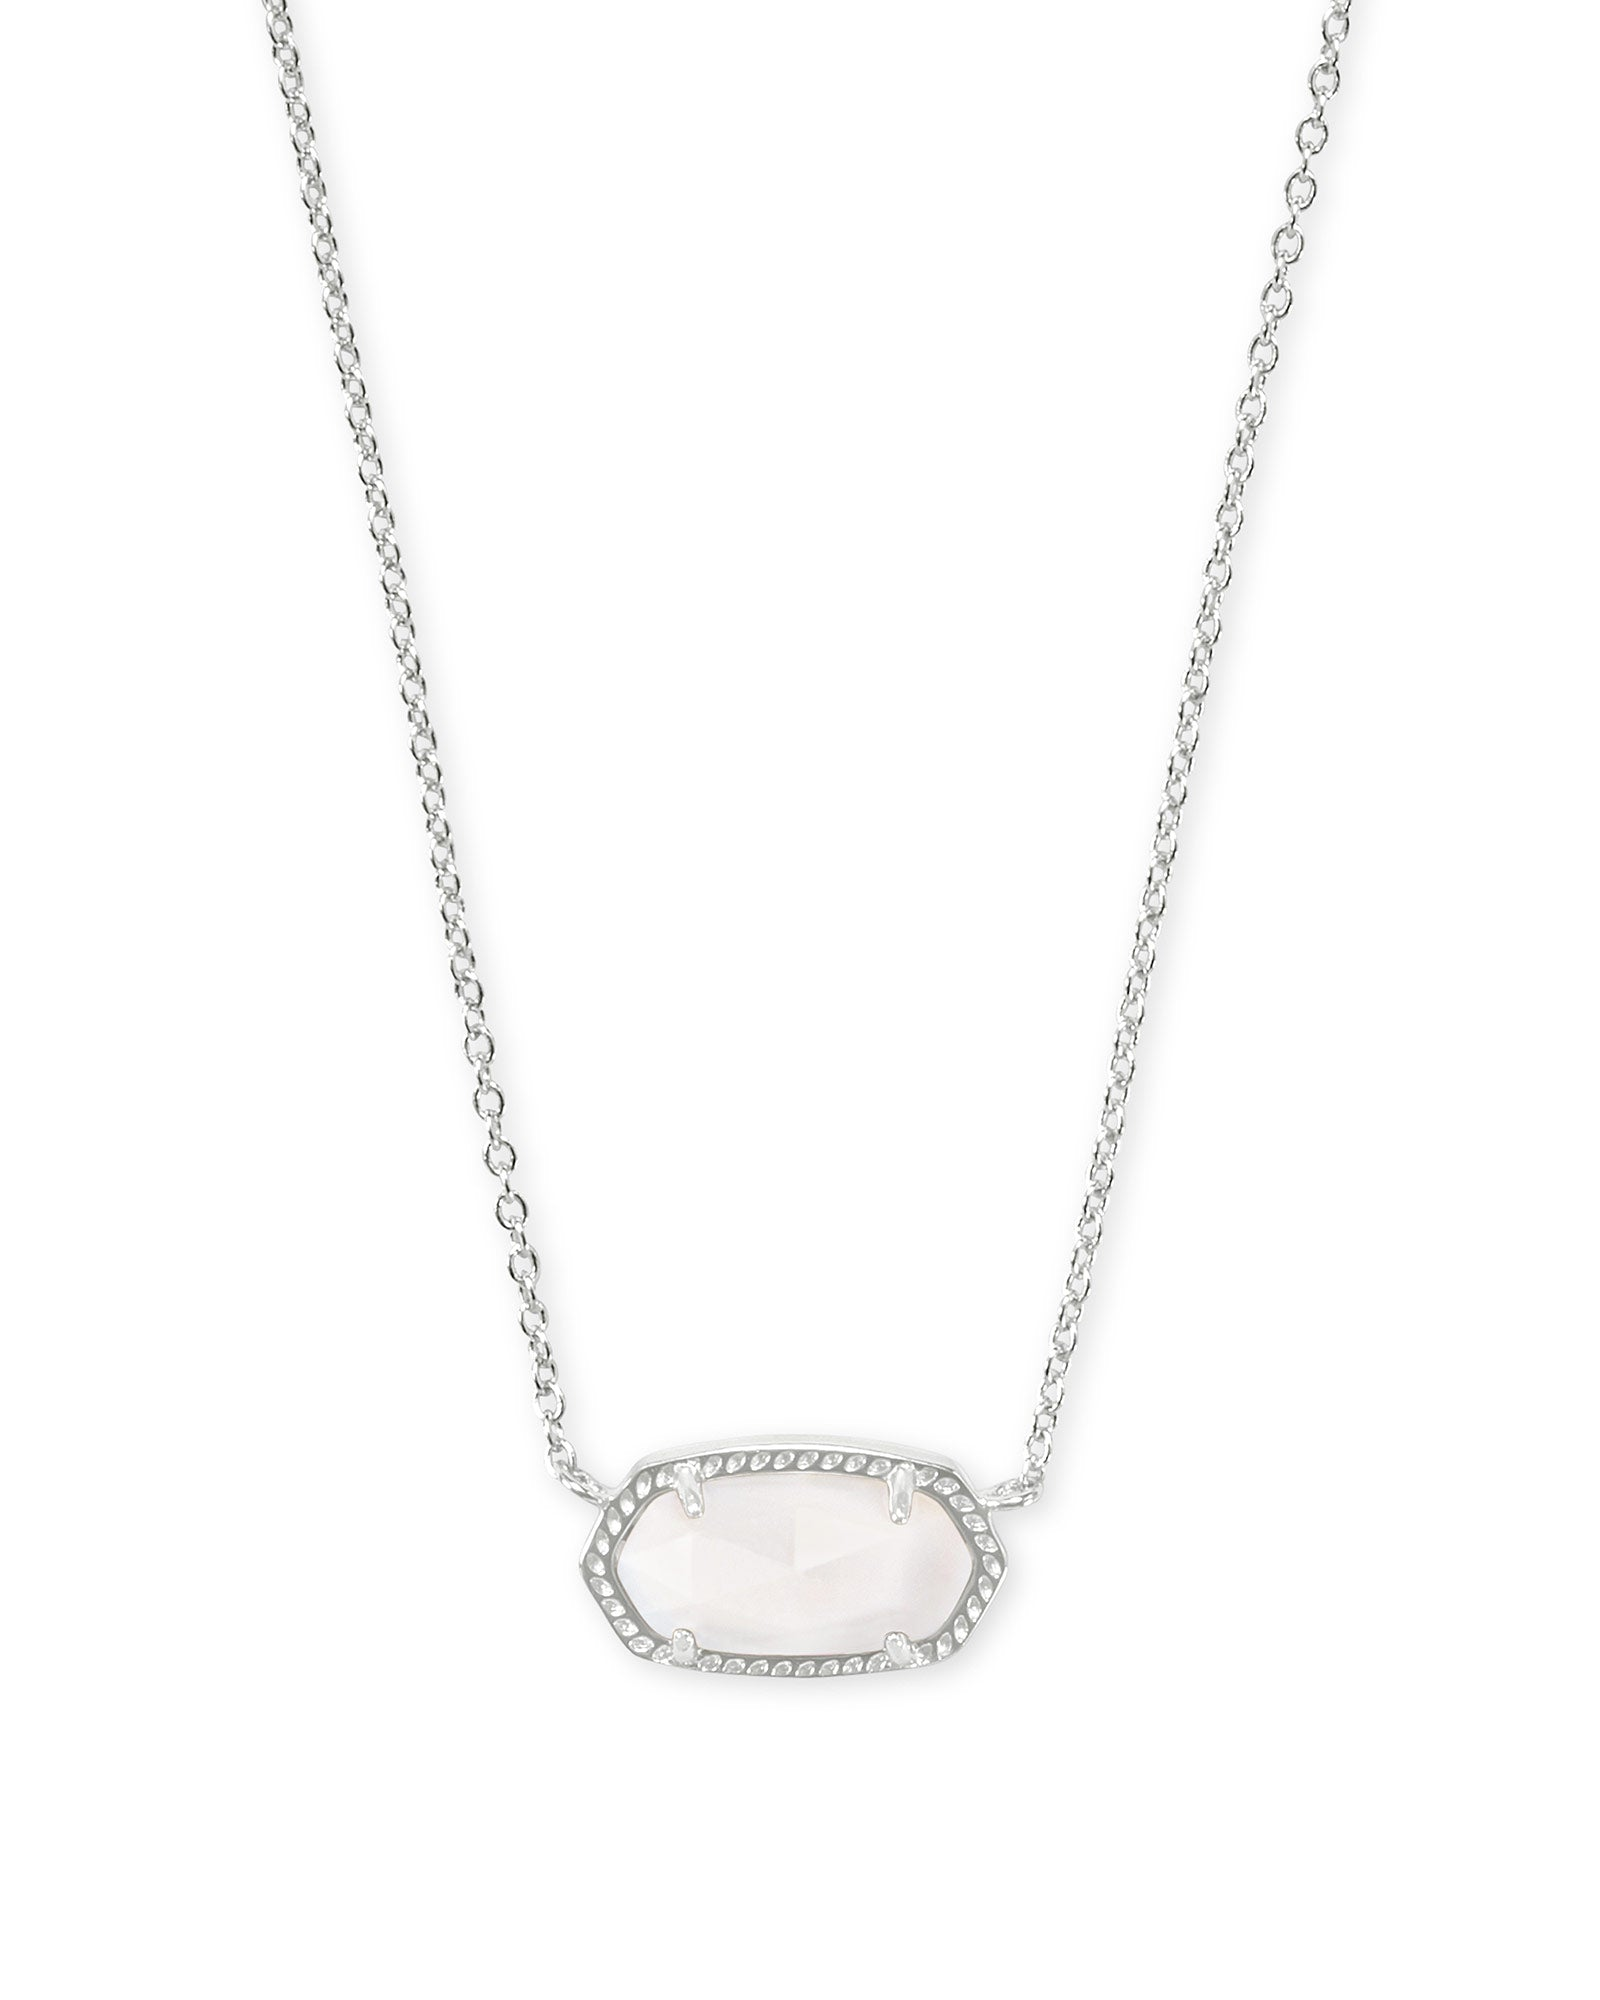 Kendra Scott Elisa Necklace Rhodium White MOP - Gabrielle's Biloxi